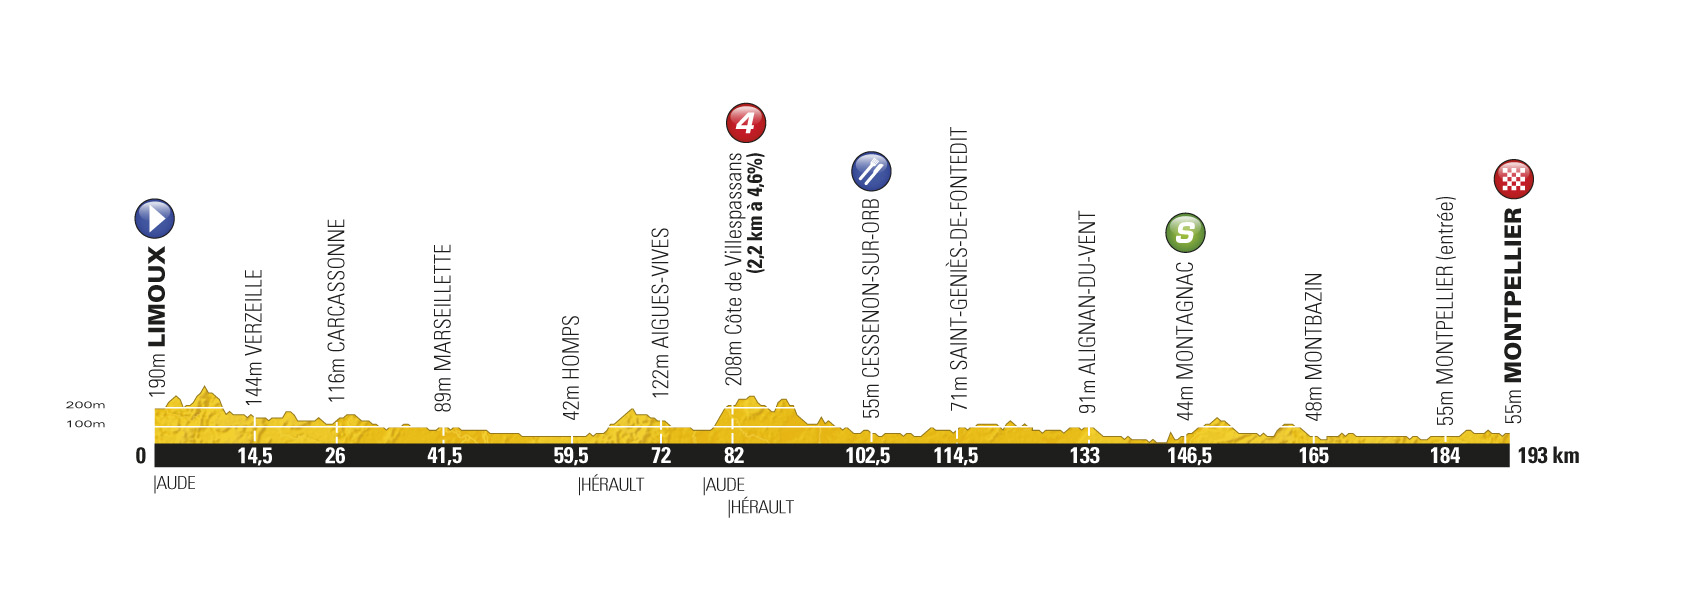 Stage 15 profile, Tour de France 2011